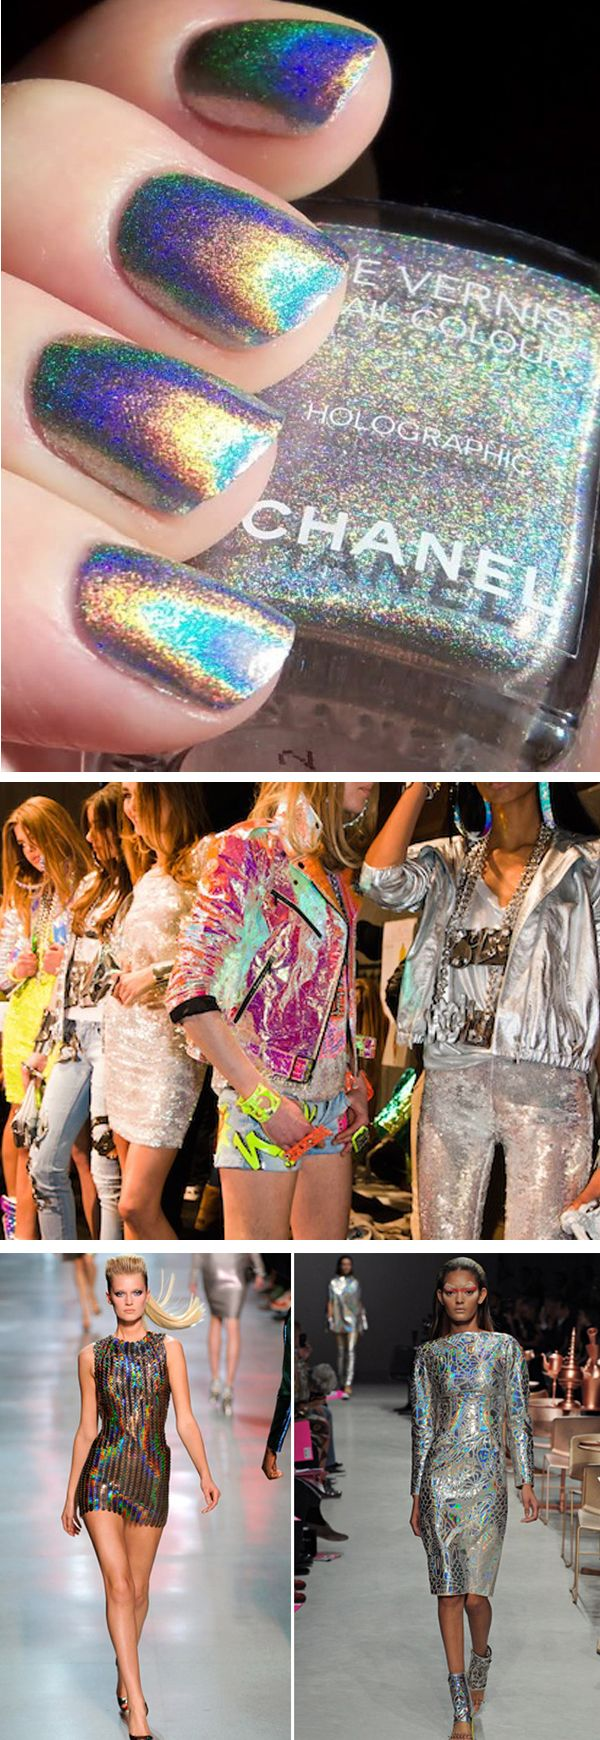 hologram and neon #mirabellabeauty #neon #muse